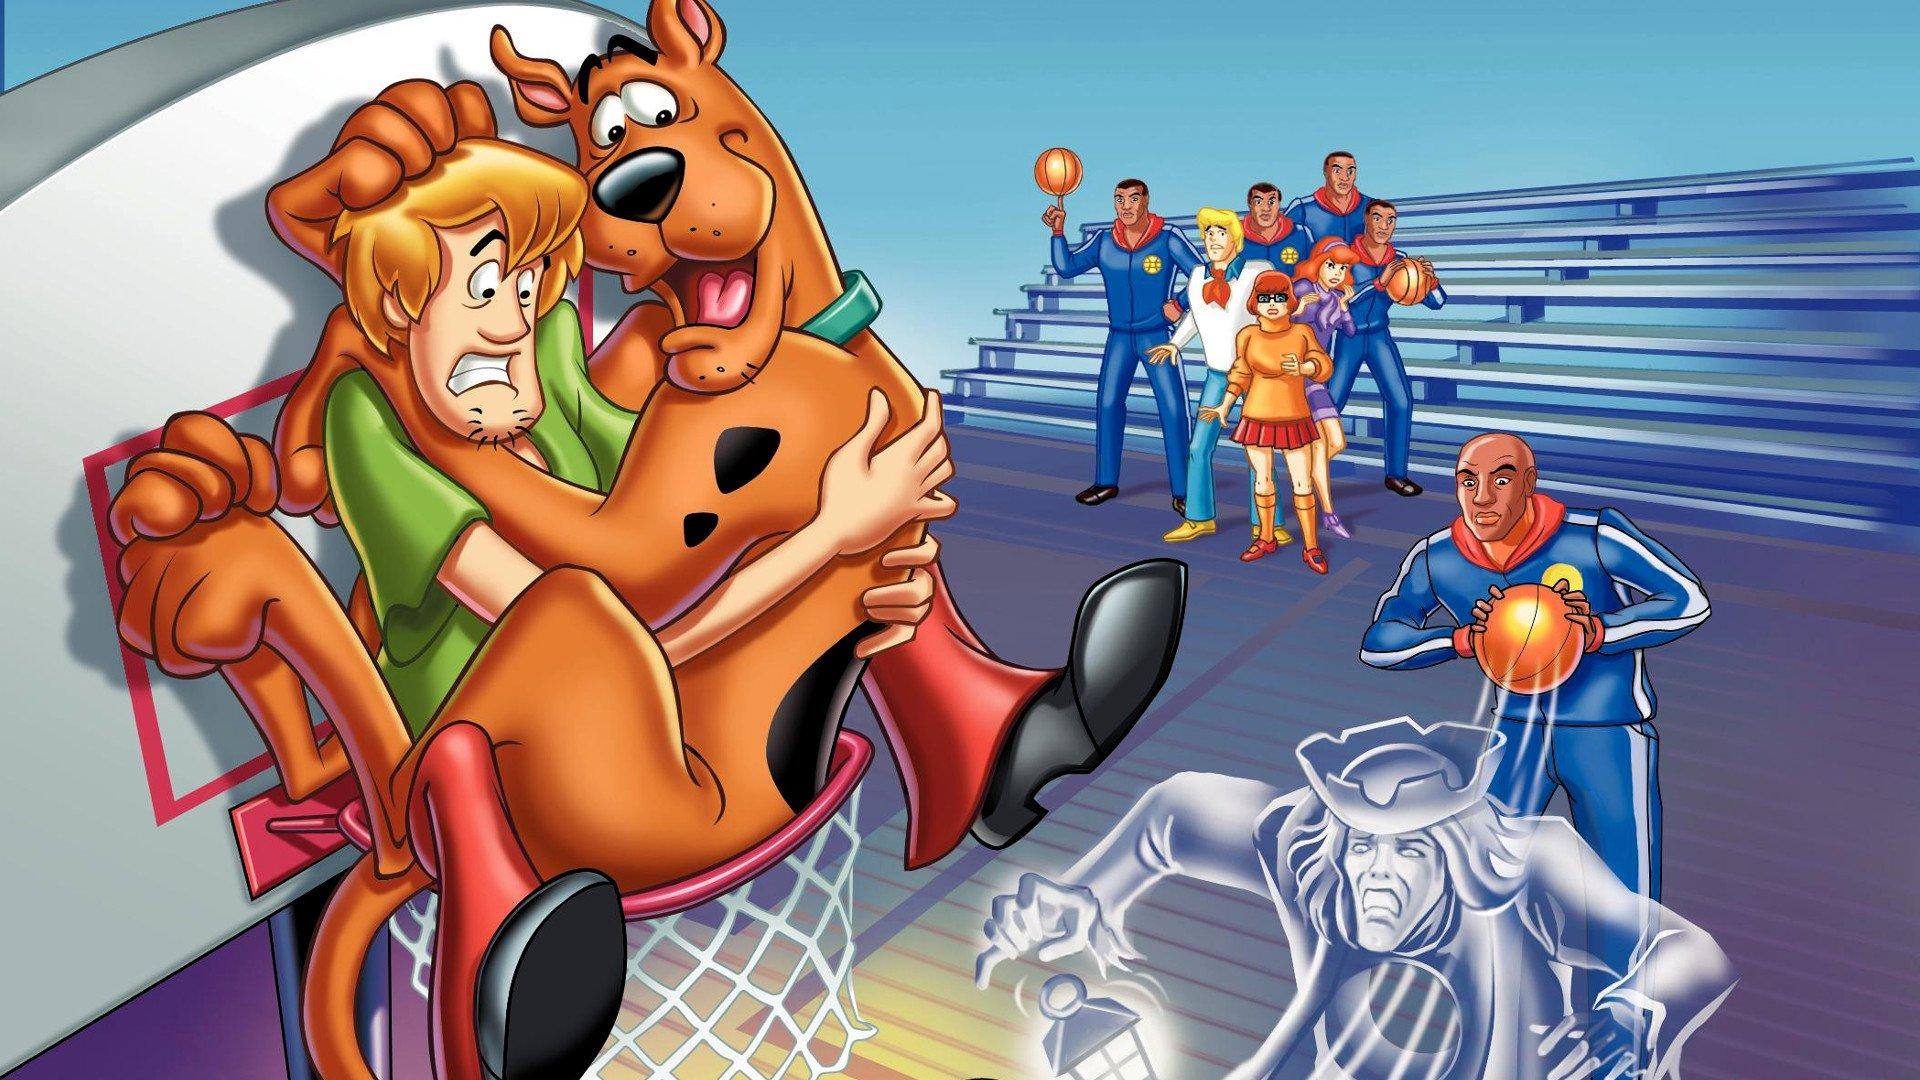 Scooby-Doo Meets The Harlem Globetrotters HD Wallpaper | Background ...